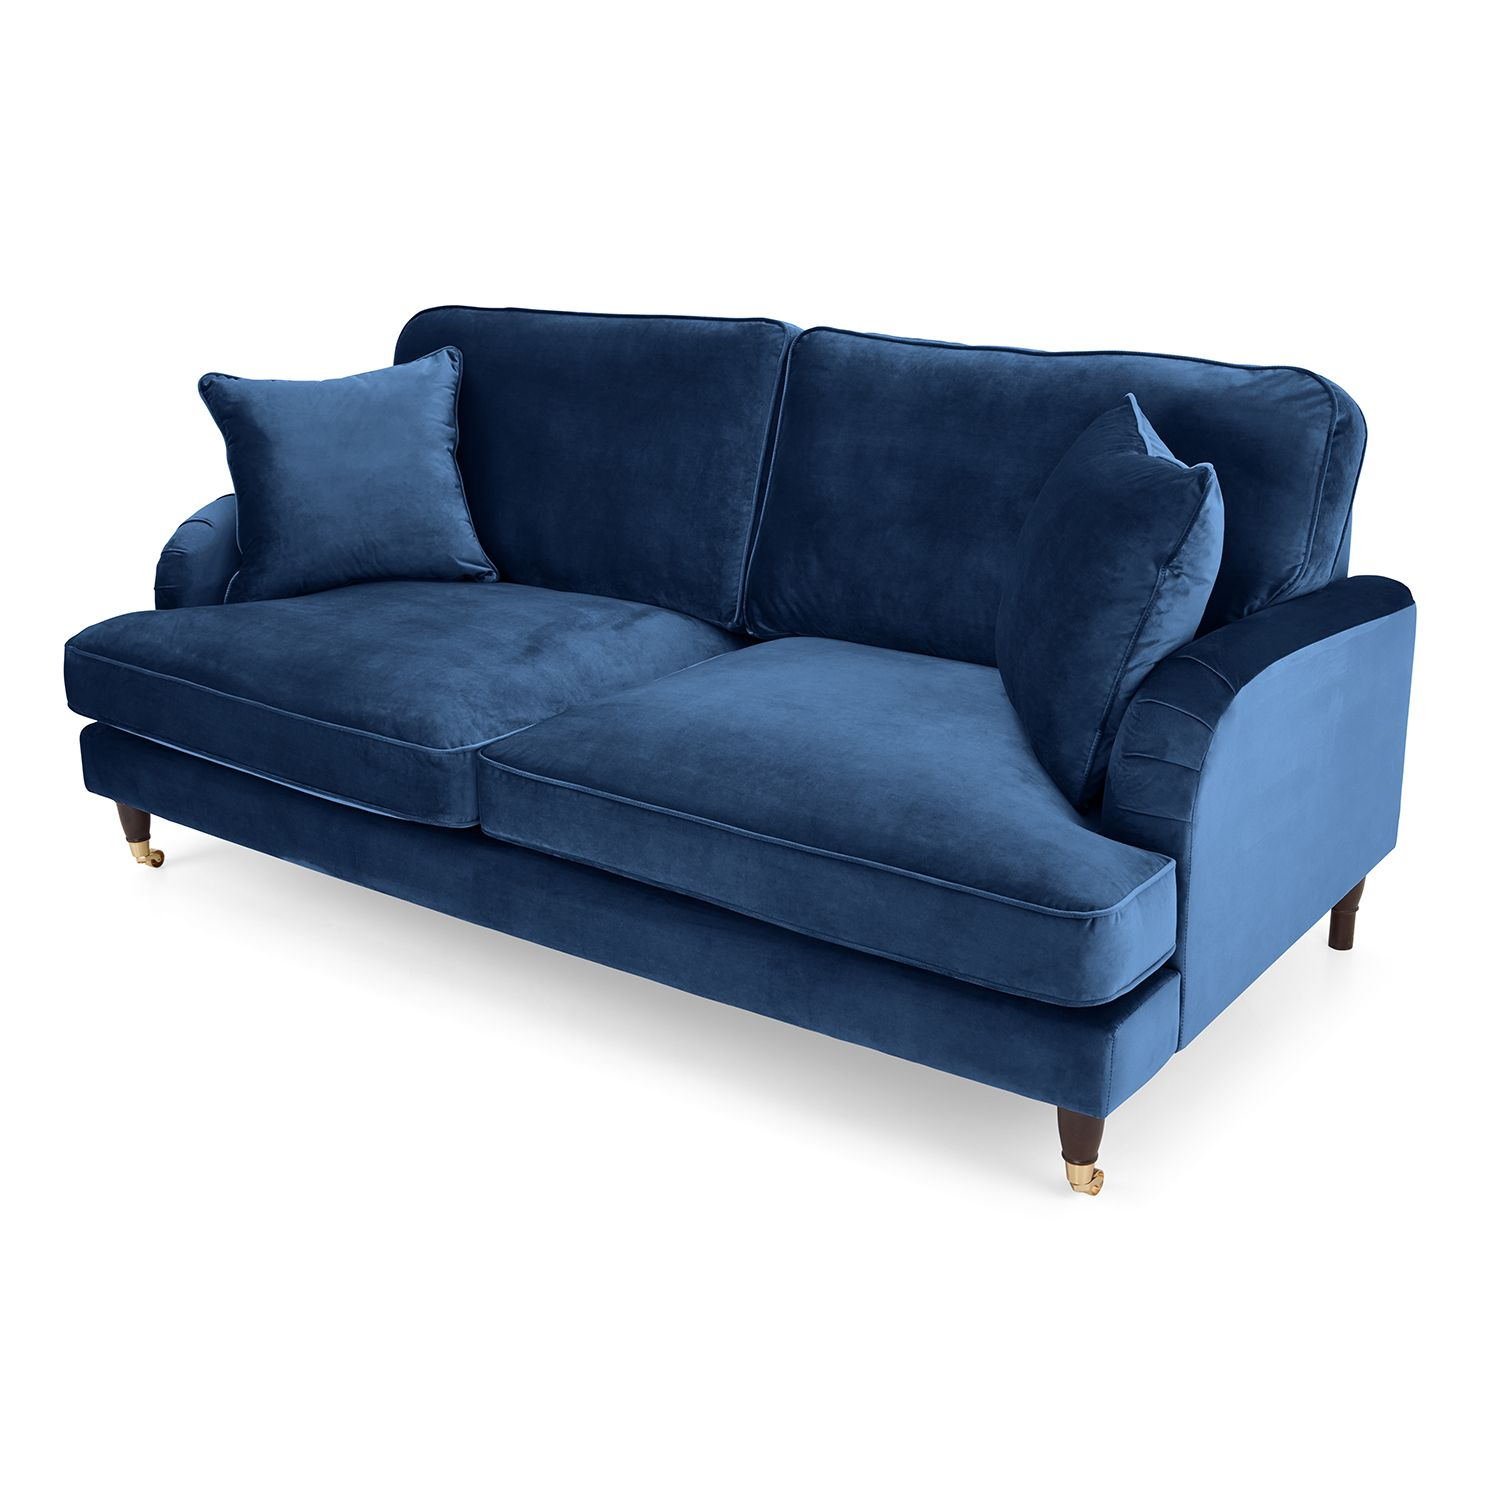 Habitat Rupert Sofa Review Rupert 2 Seater Velvet Sofa Next Day Delivery Rupert 2 Seater